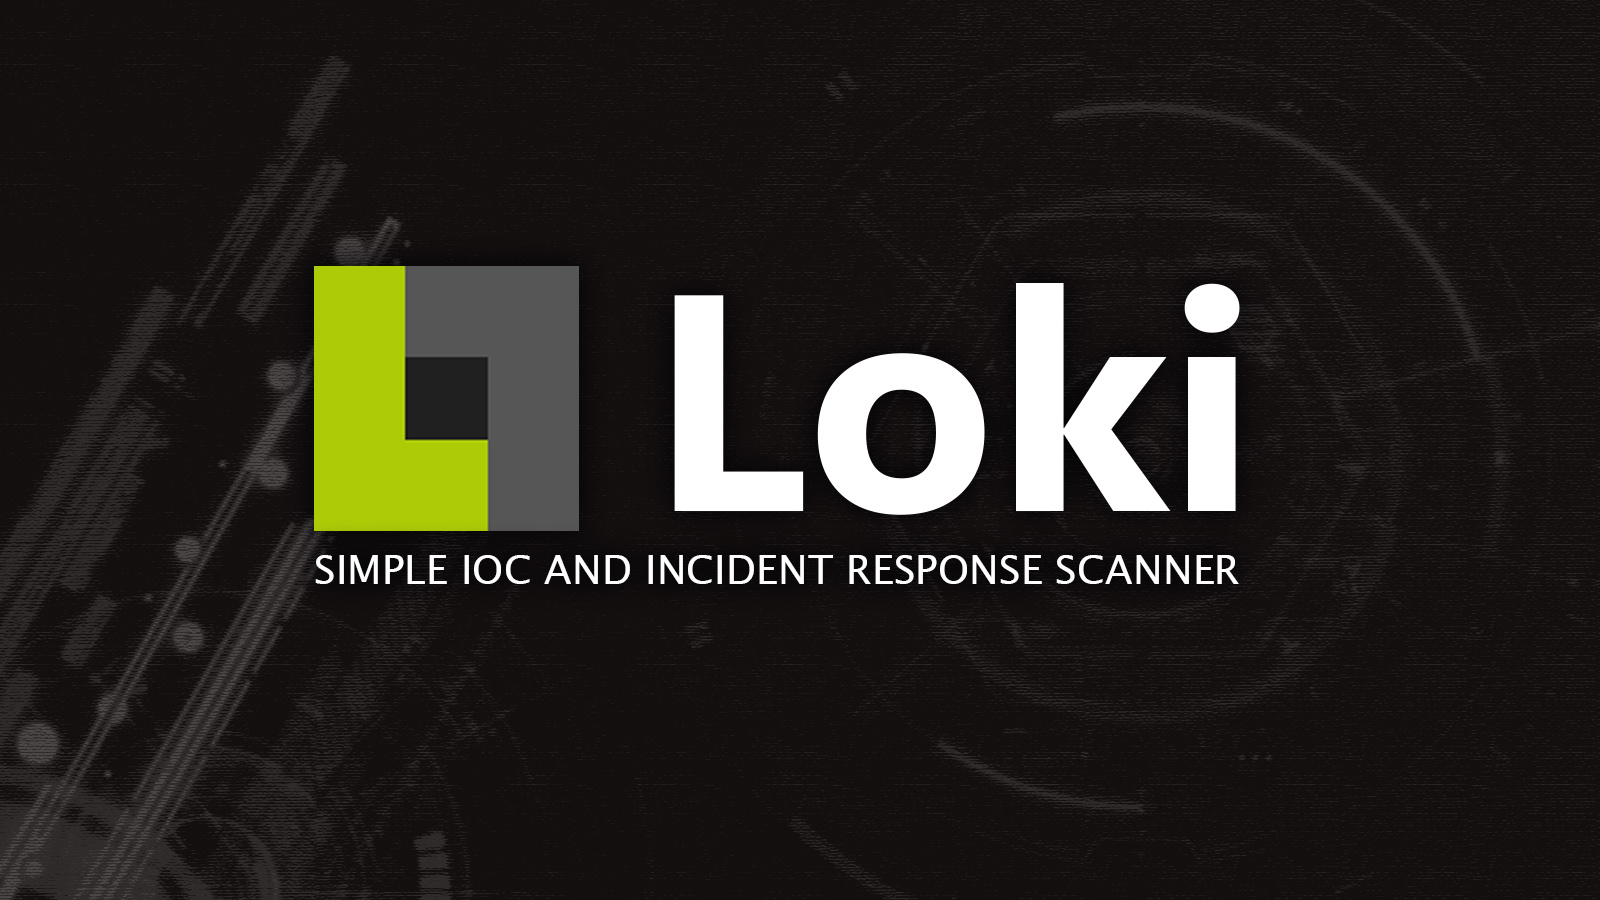 Loki -  Simple IOC and Incident Response Scanner